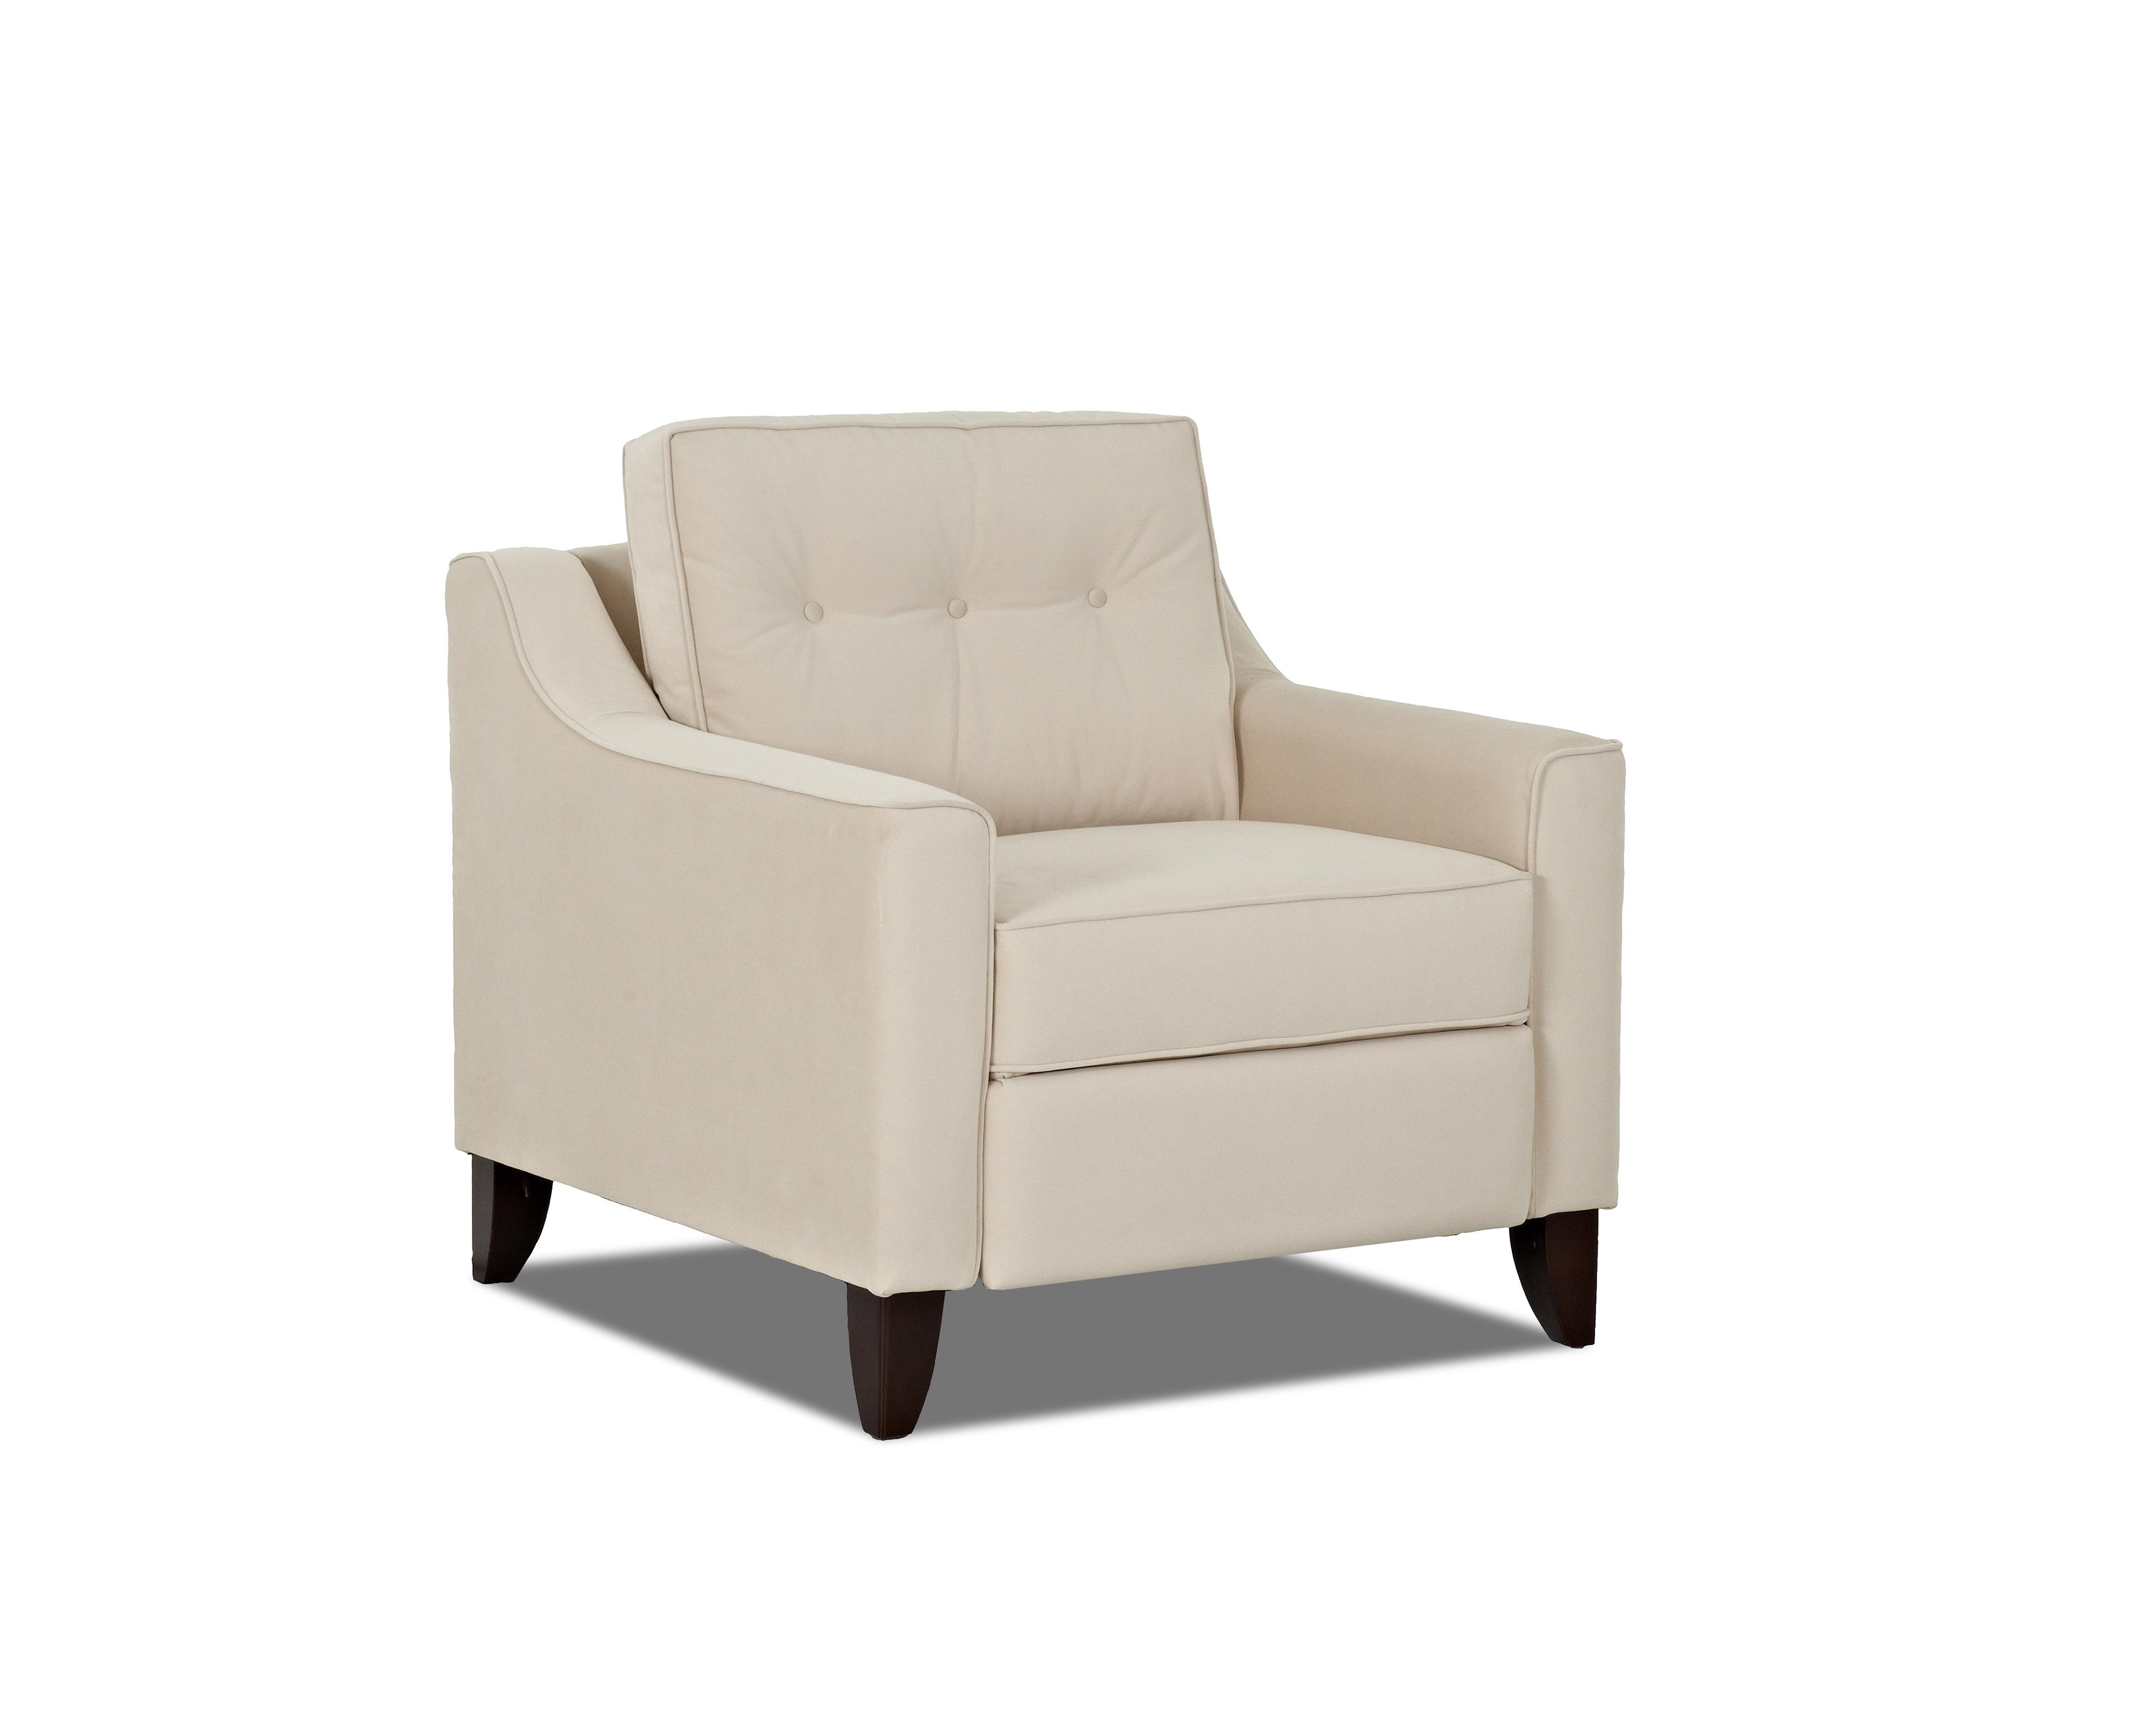 Audrina Power Reclining Chair by Klaussner at Northeast Factory Direct